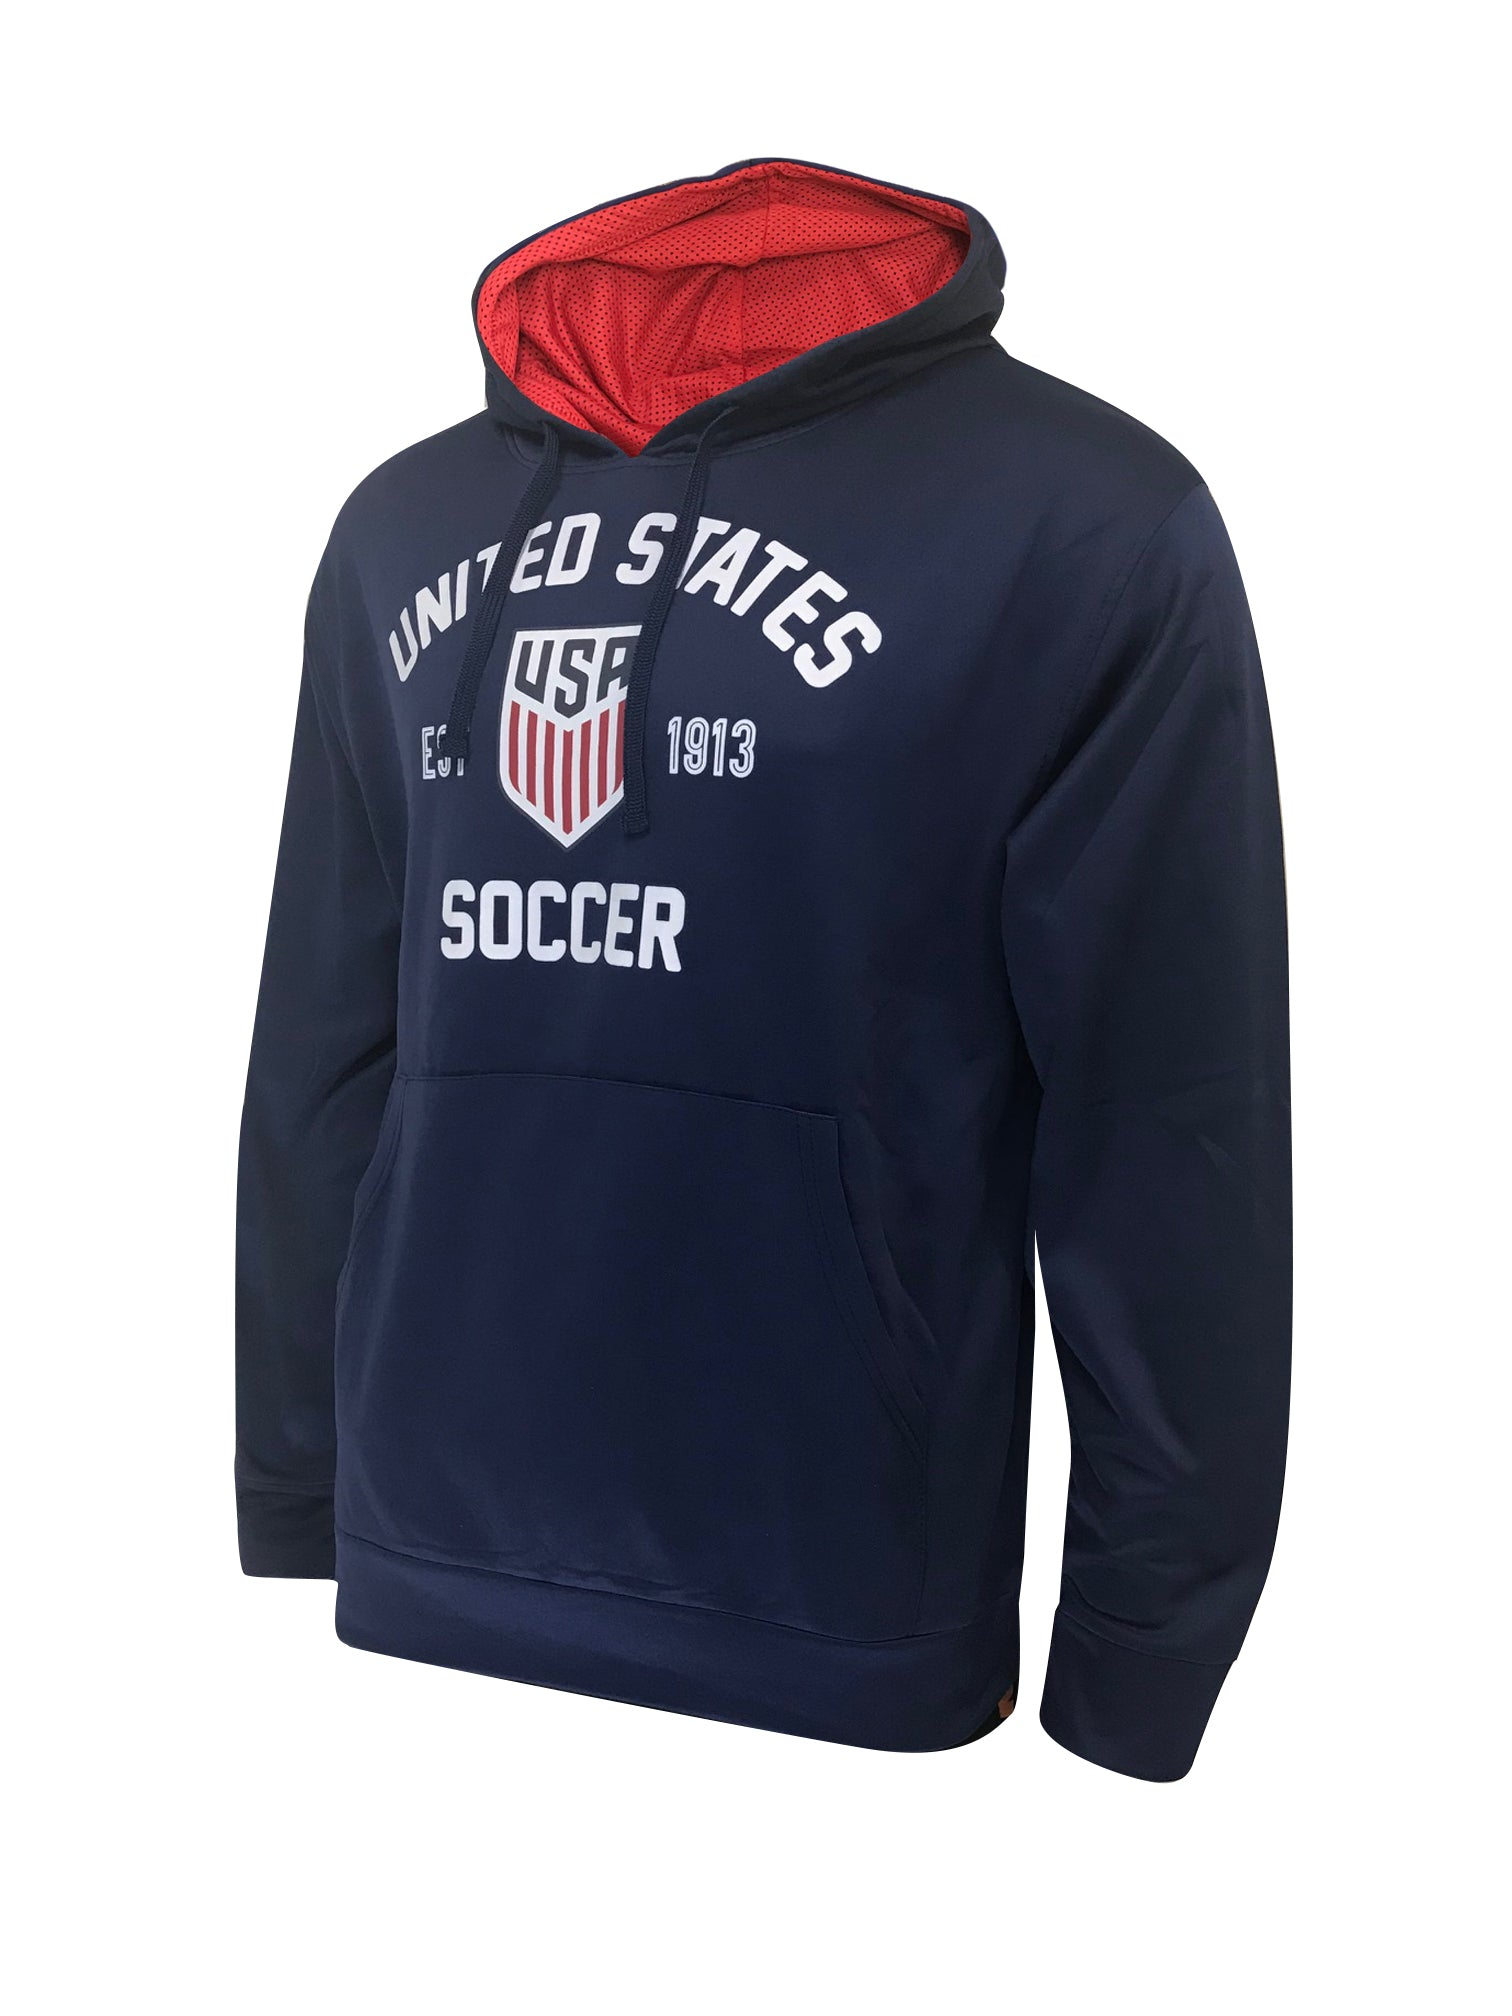 "U.S. Soccer ""1913"" Hoodie (Adult,Youth) by Icon Sports"